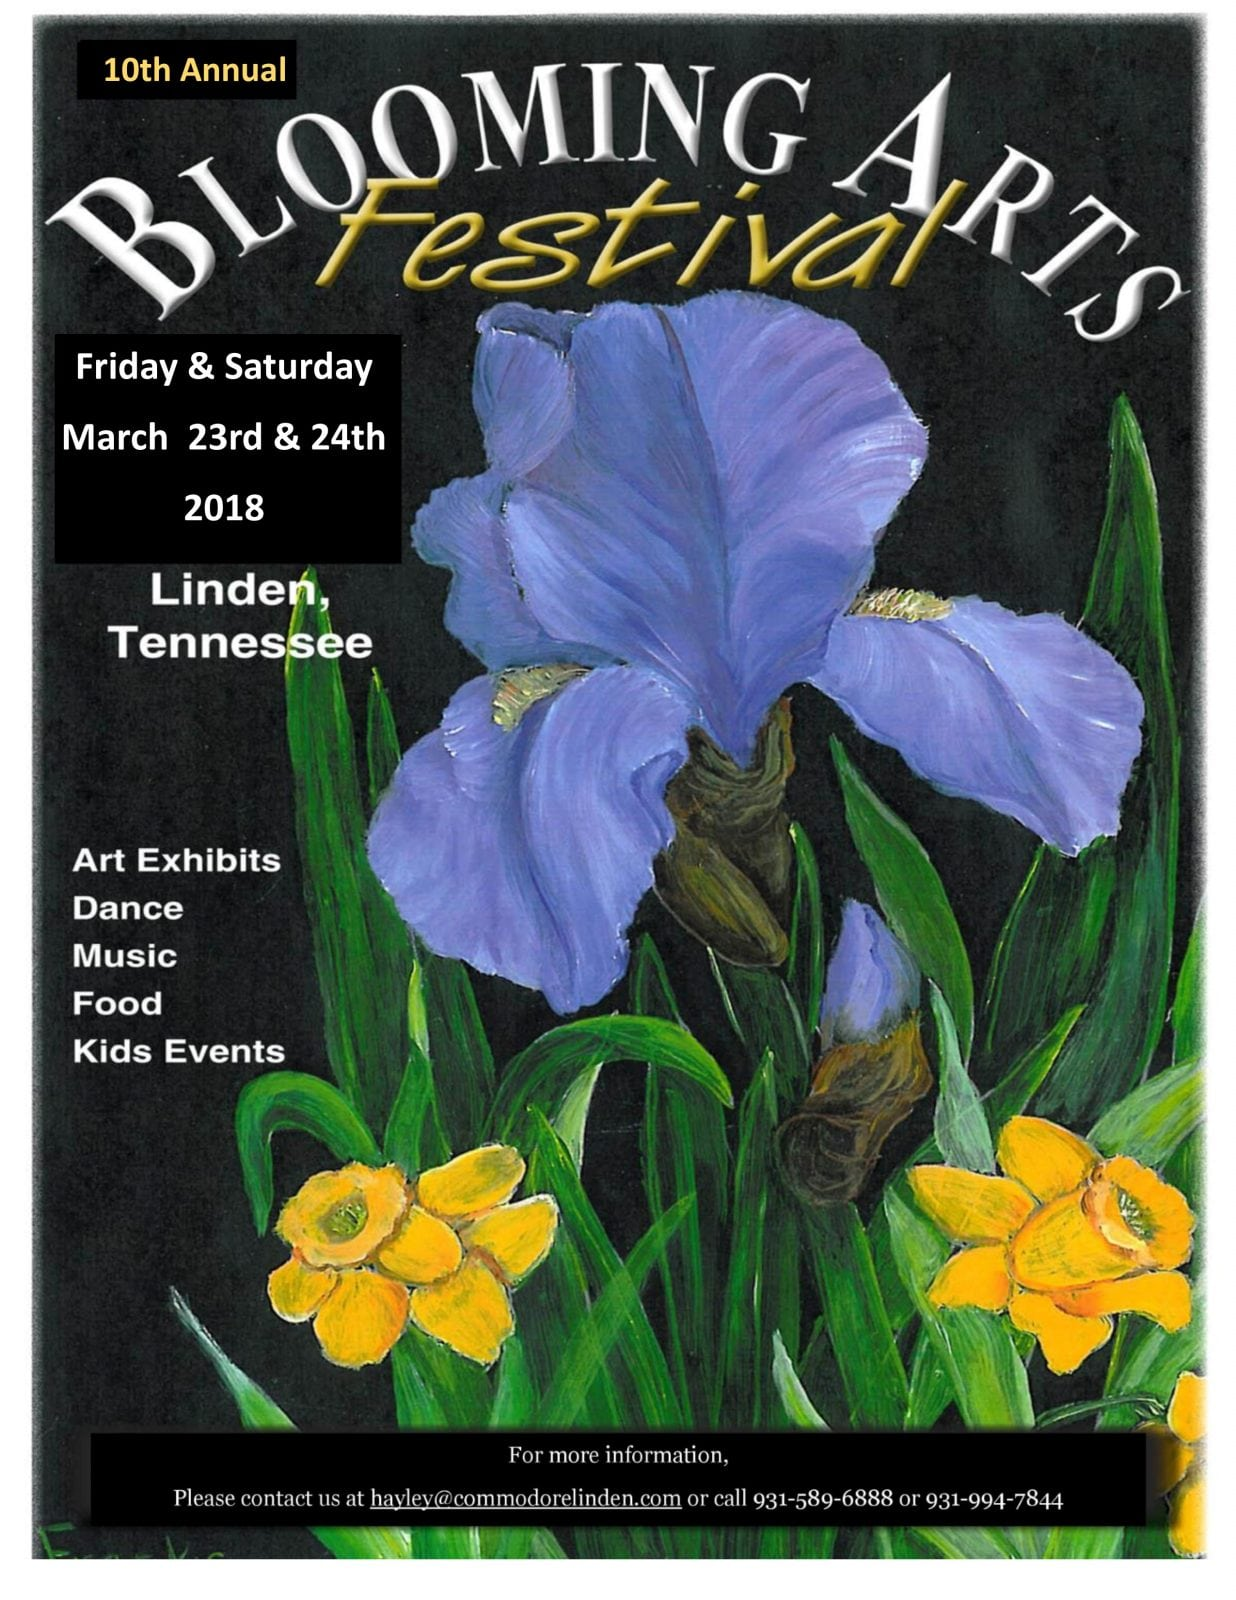 10th Annual Blooming Arts Festival - The Tennessee Magazine